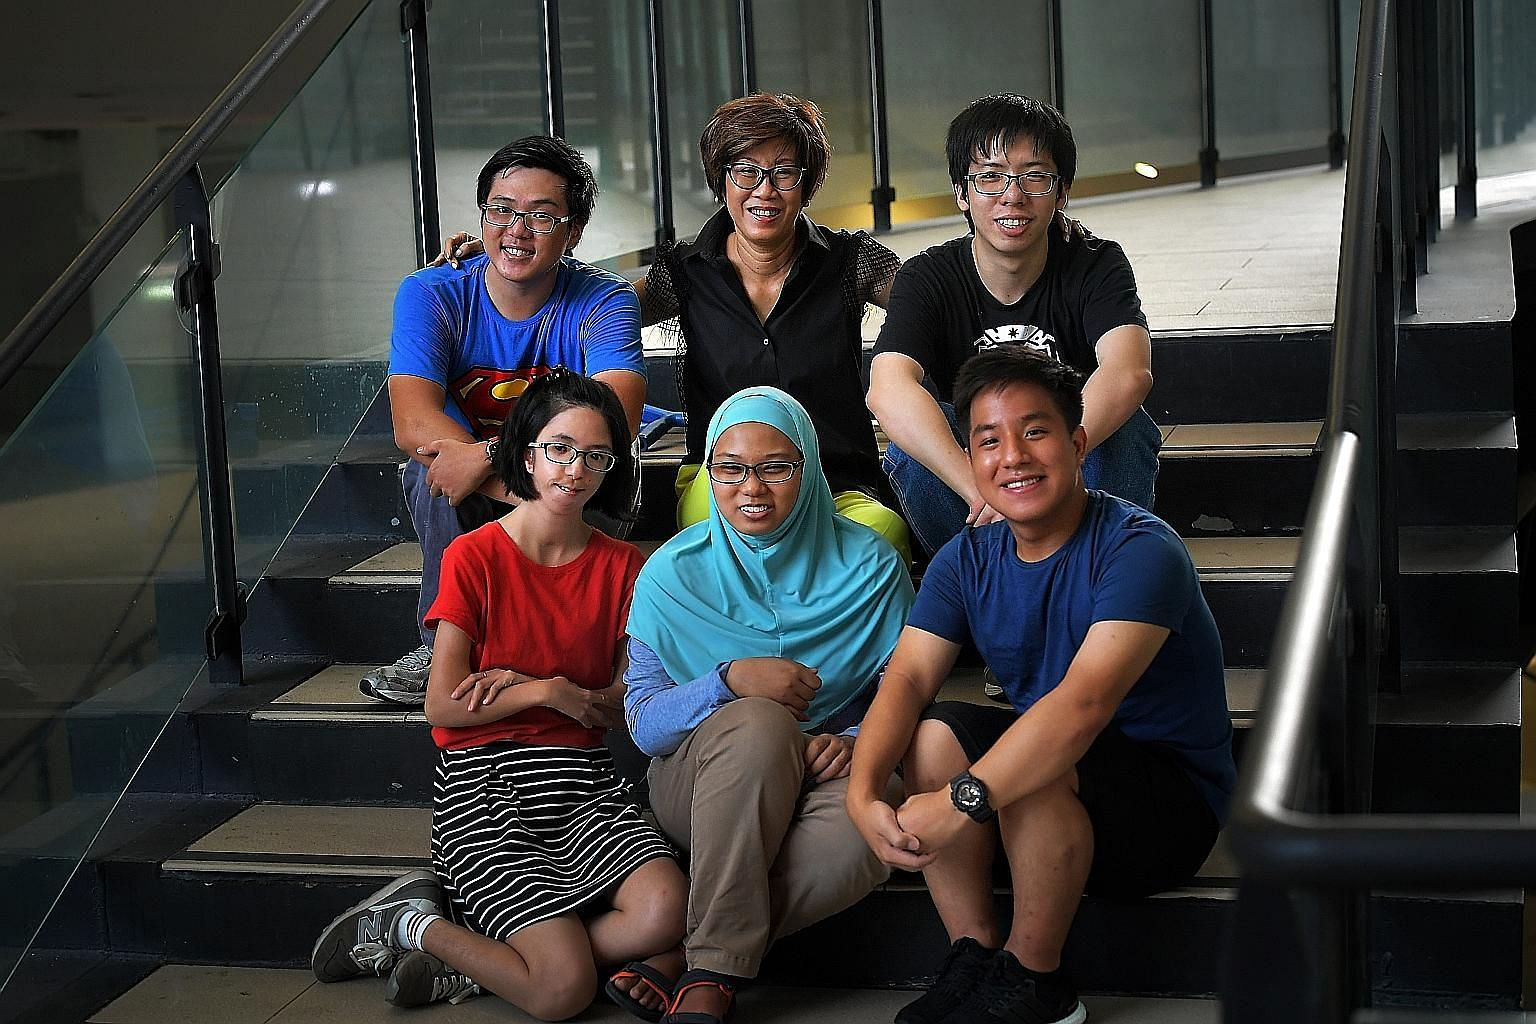 Mrs Tan Shook Wah co-founded The Smart Think, in February this year. The start-up has pioneered a new technology to make lighter, safer and cheaper body armour and helmets. Mrs Tan Shook Wah with some recipients of the Dare to Dream scholarship: (ant